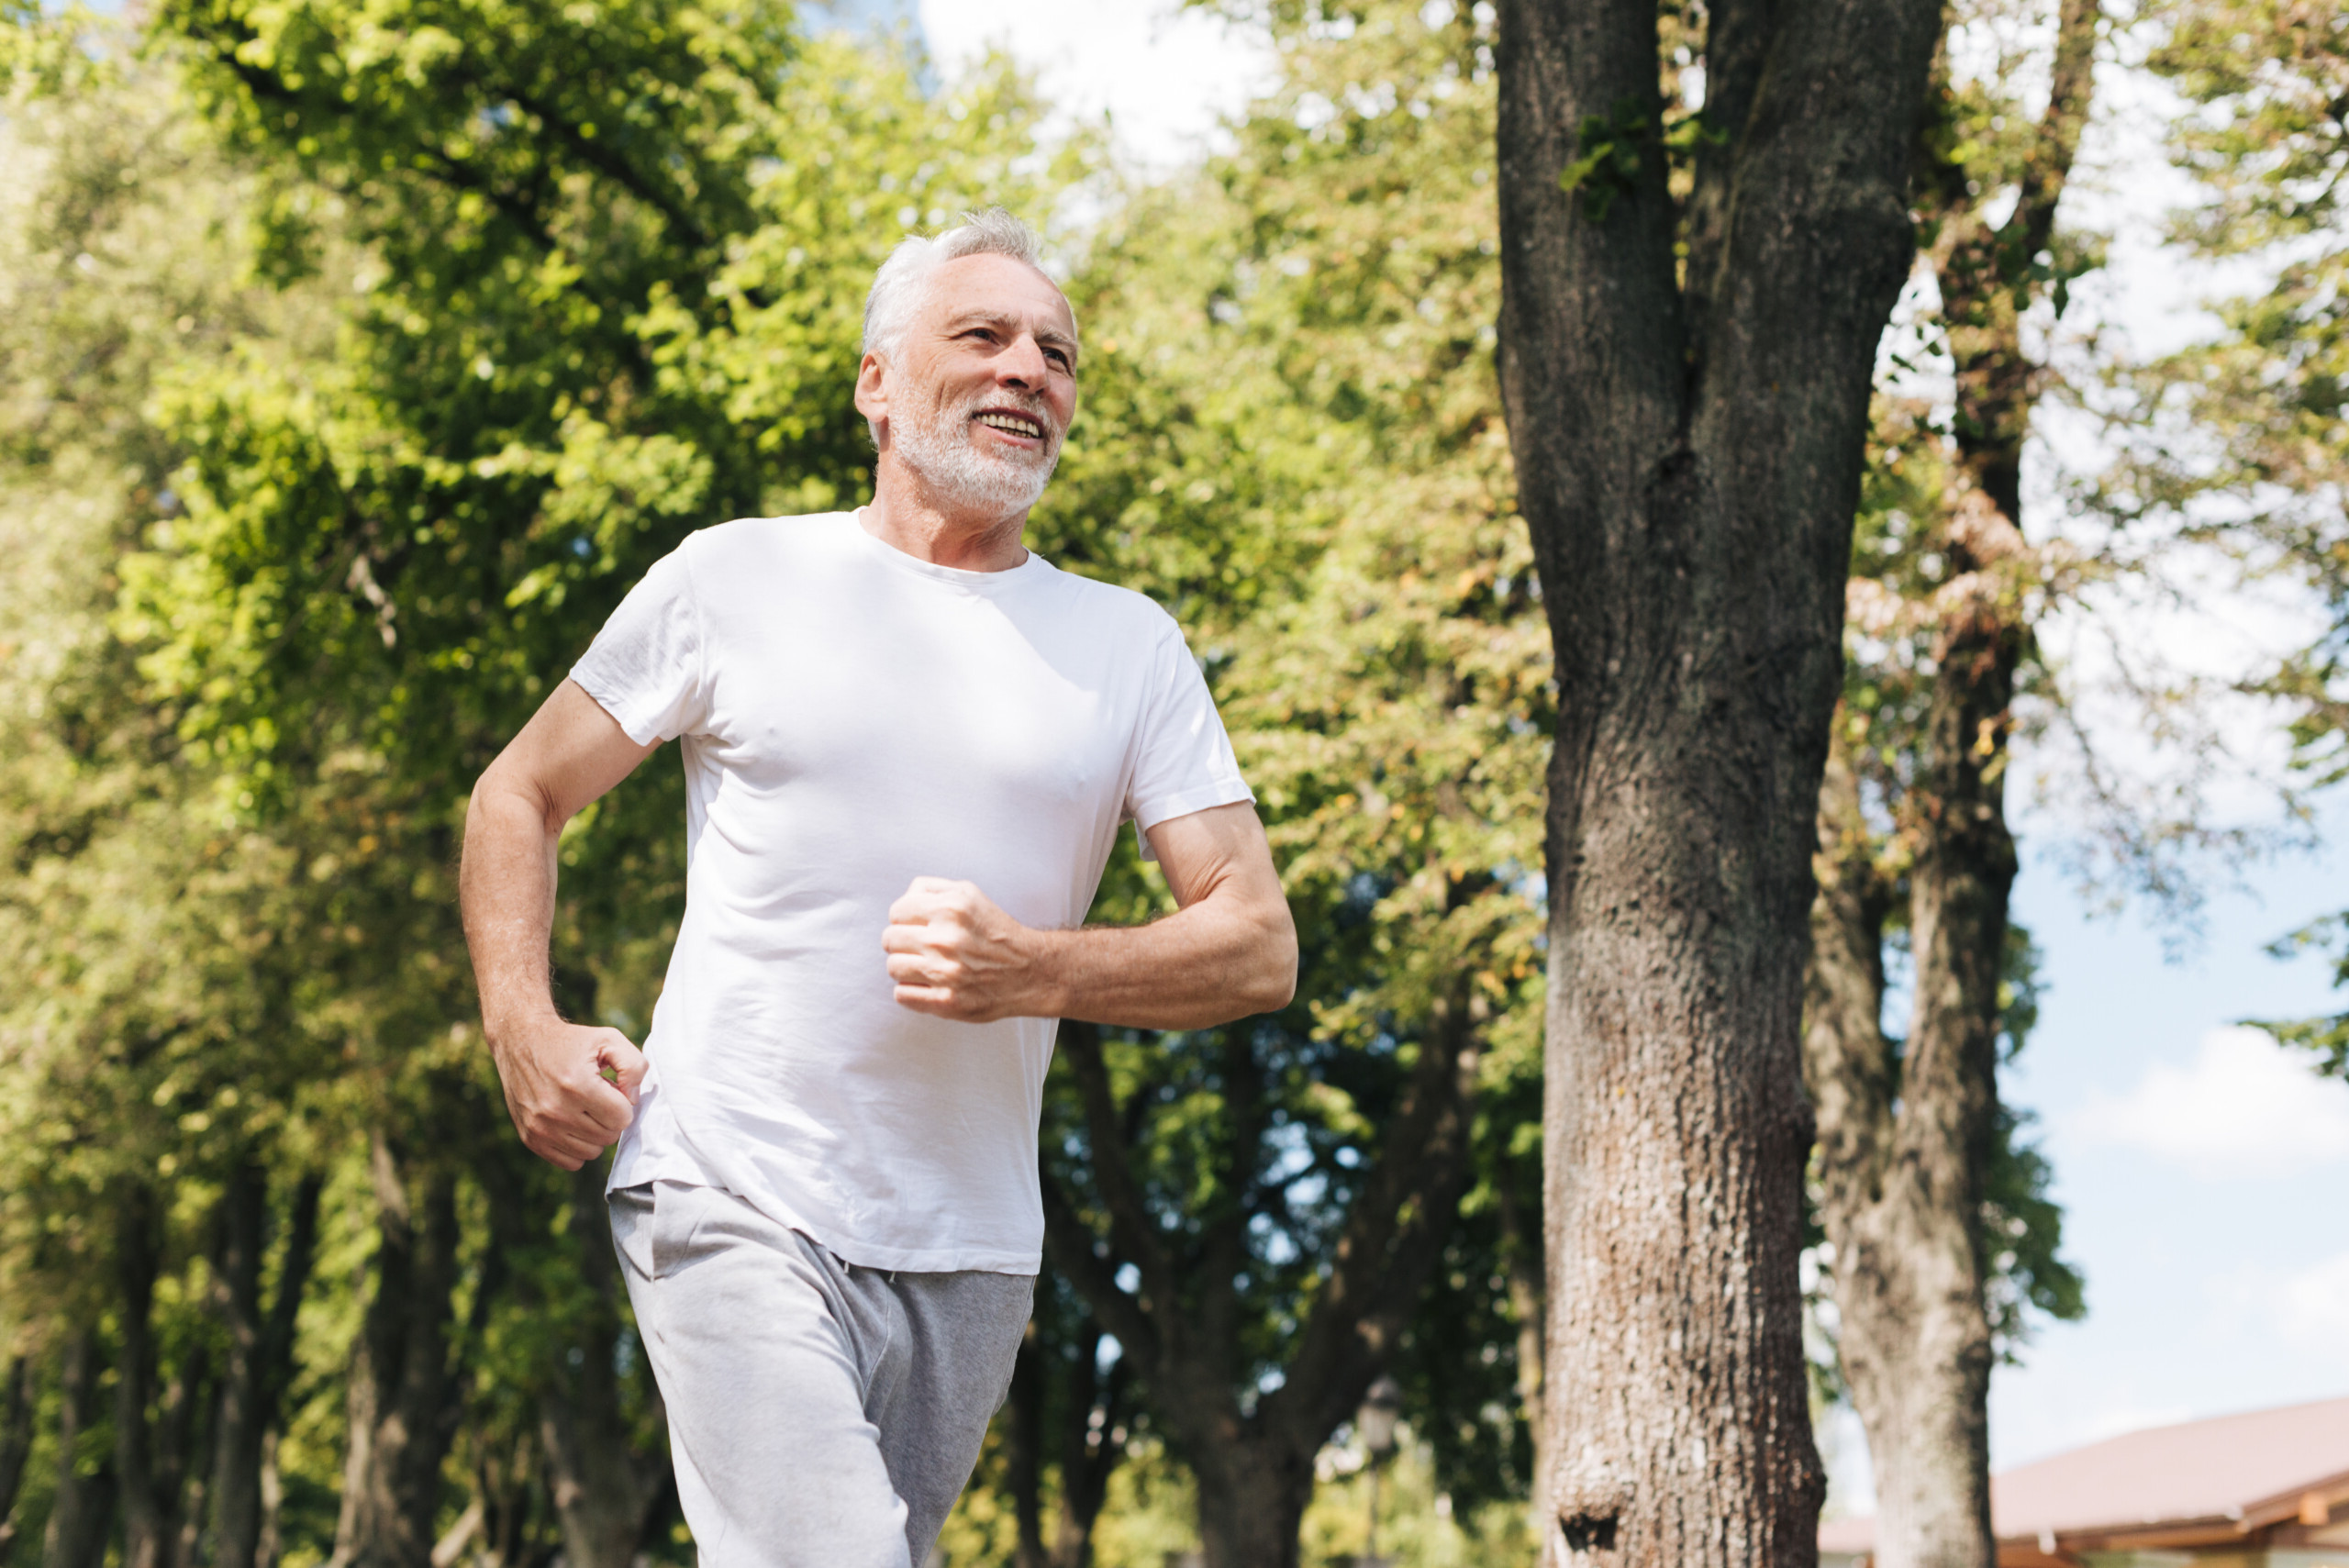 Can Exercise Cut Esophageal Cancer Risk?